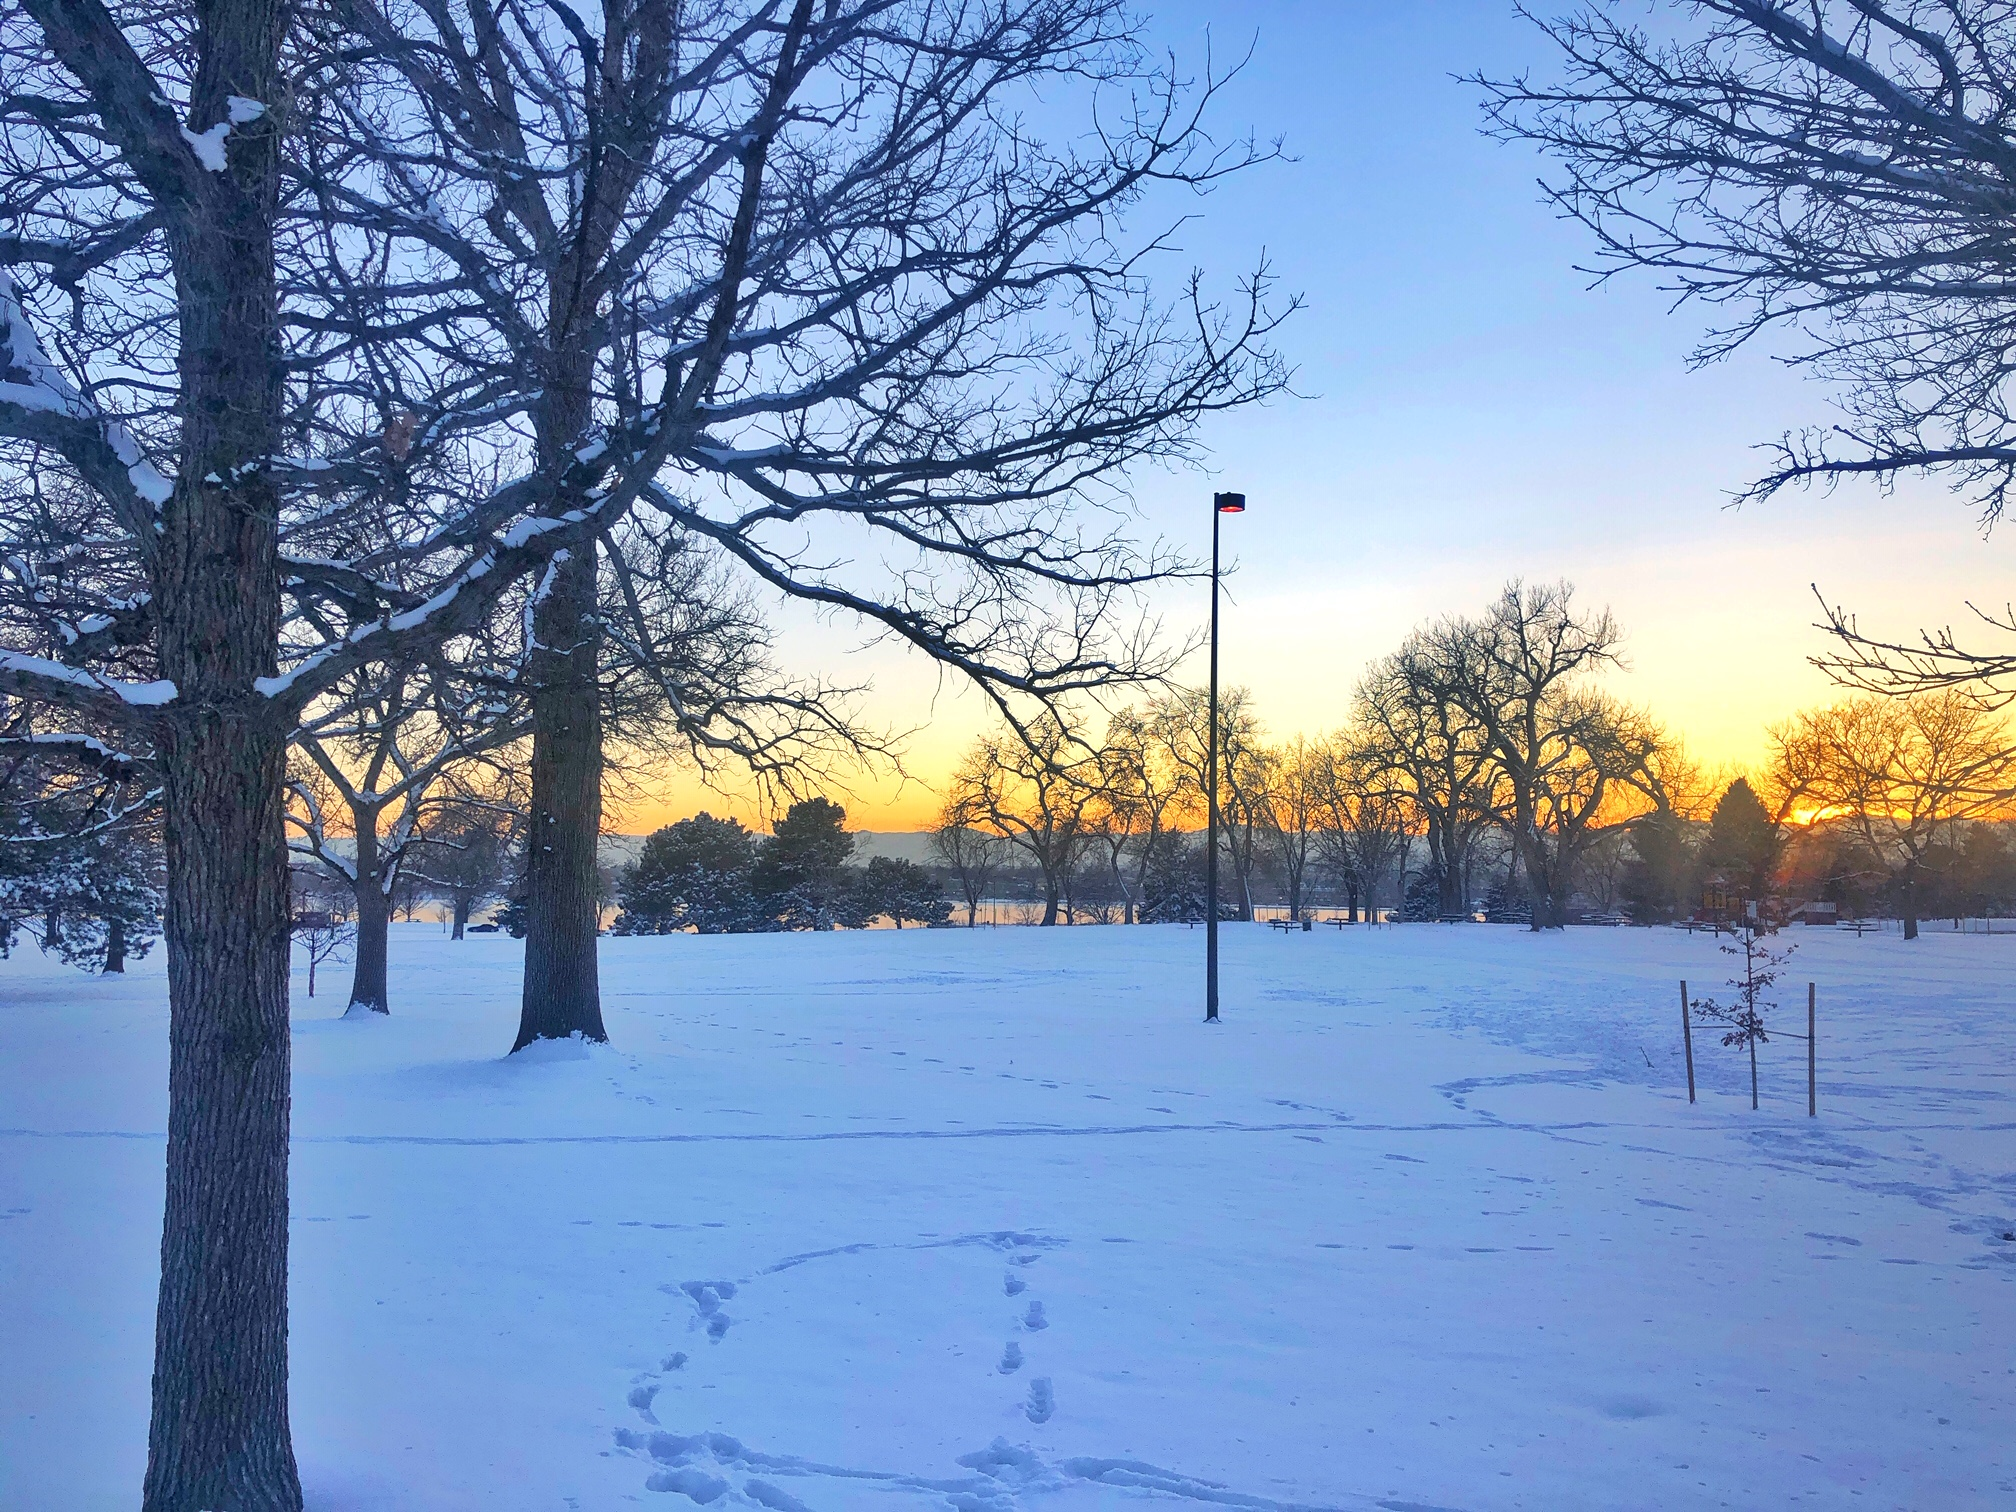 Snowy sunset views from Sloans Lake.